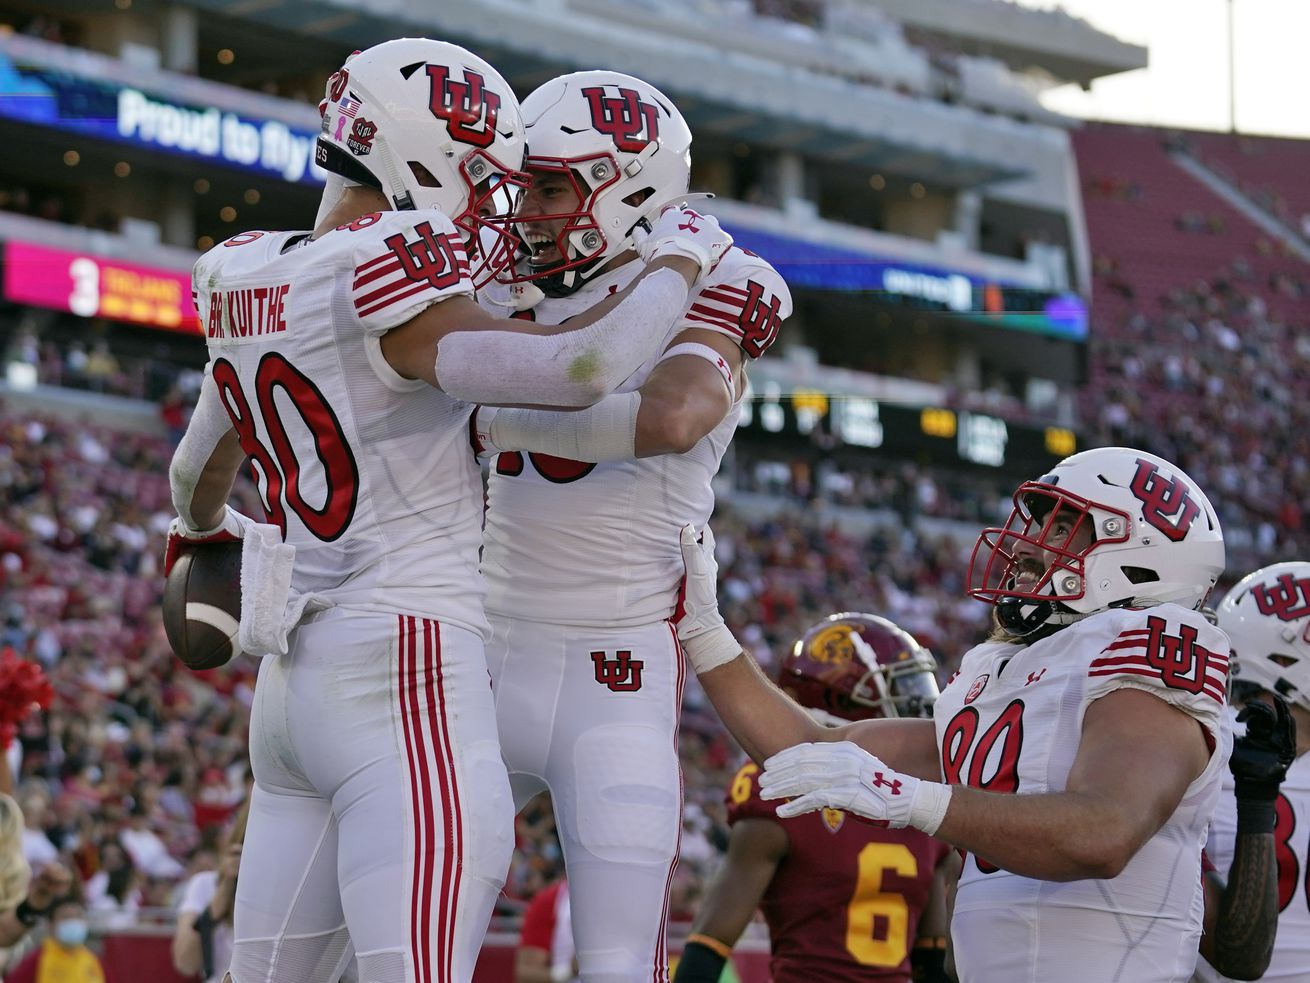 Utah tight end Brant Kuithe (80) celebrates his touchdown with wide receiver Britain Covey during game against USC.